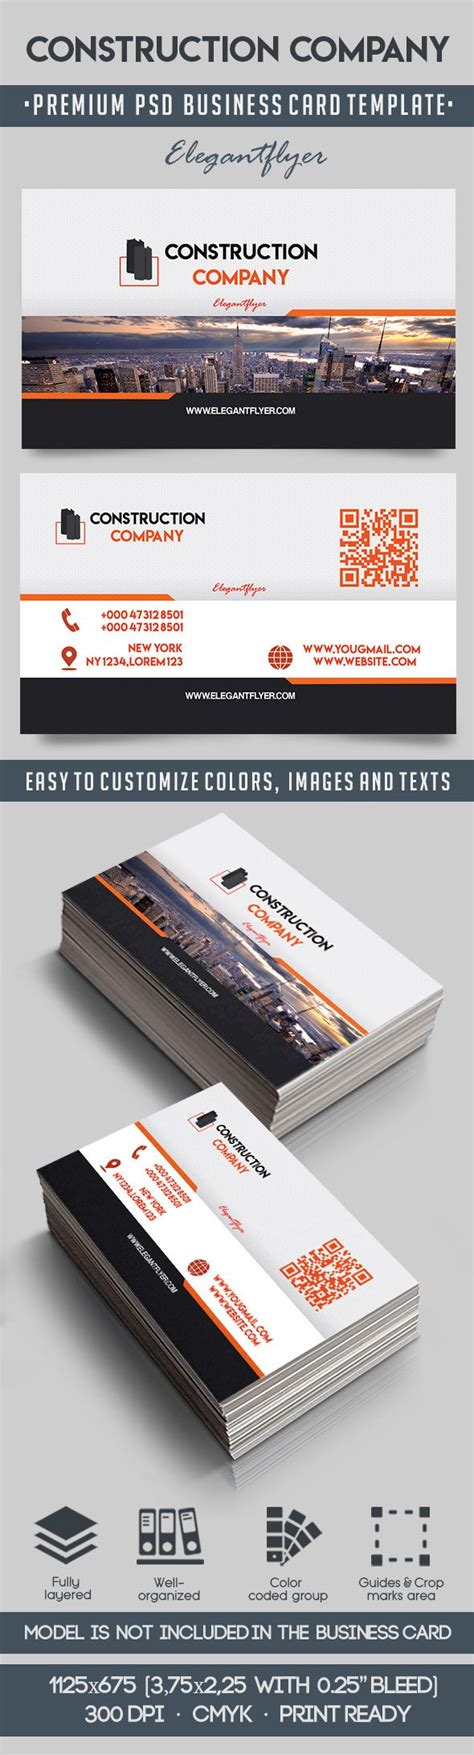 construction business card templates psd construction company psd business card by elegantflyer